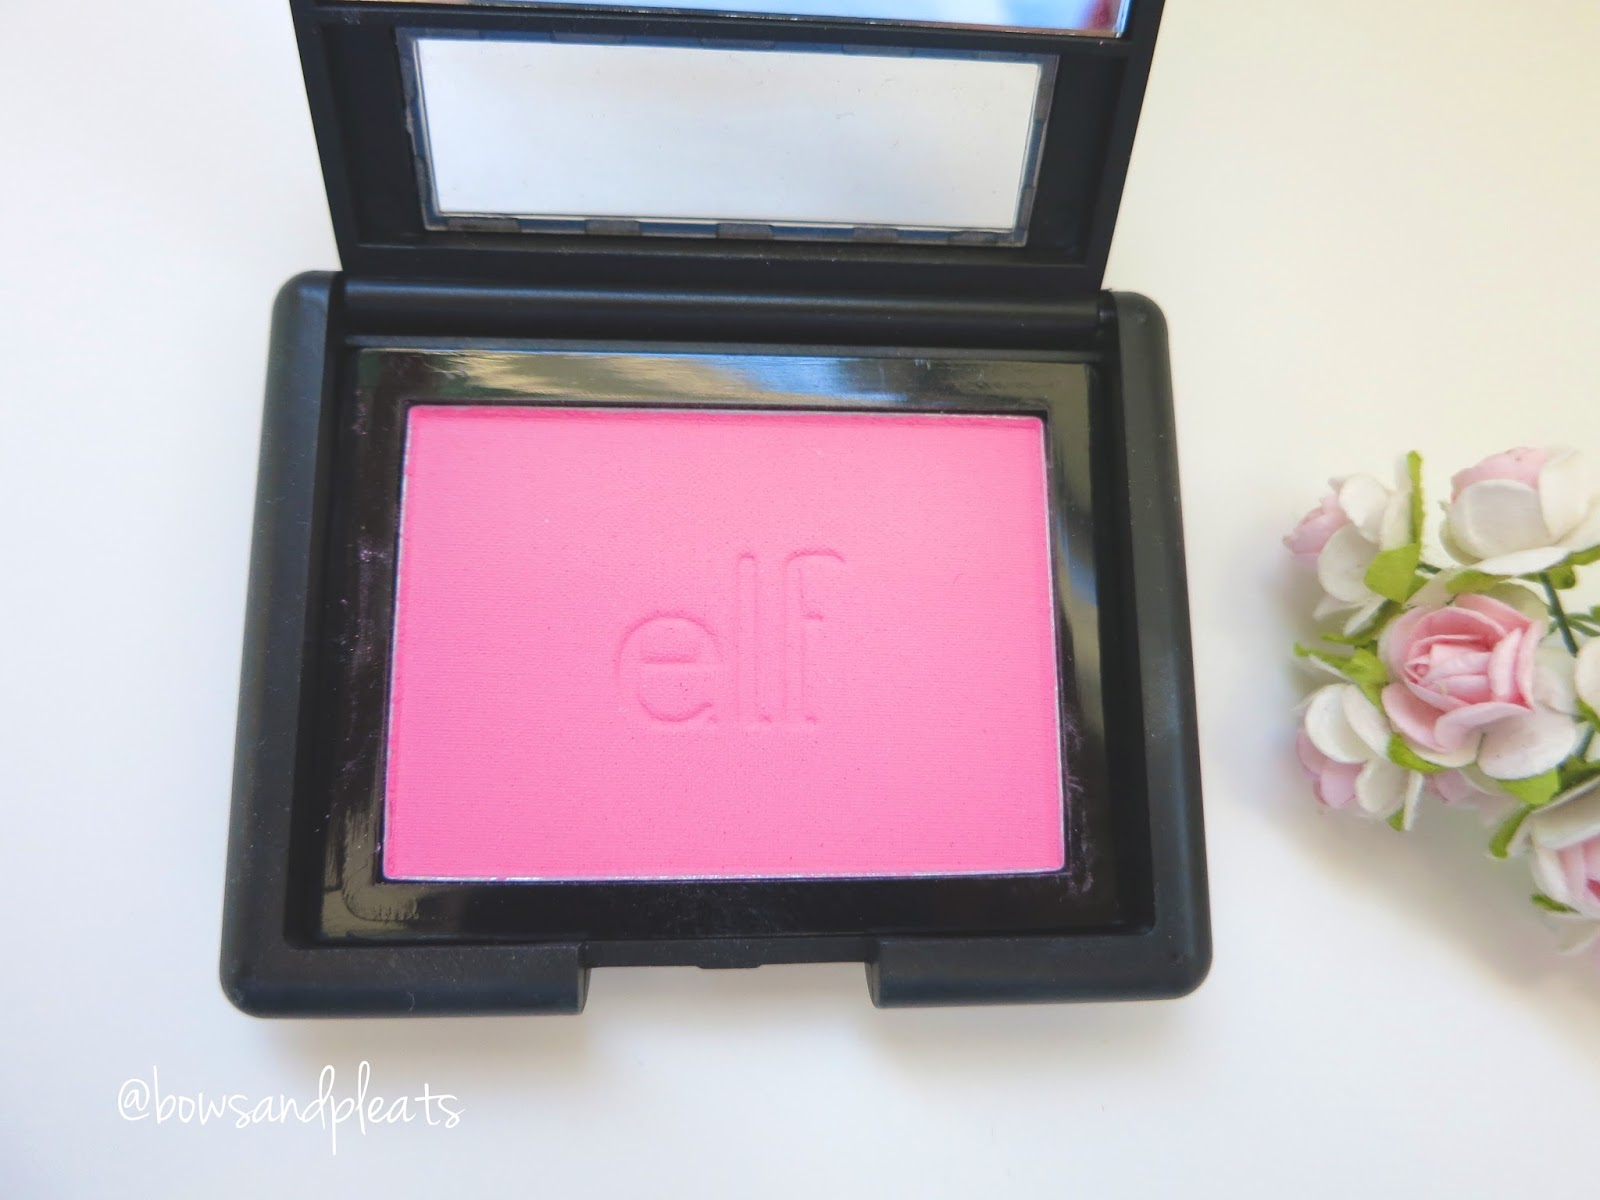 e.l.f studio blush in pink passion